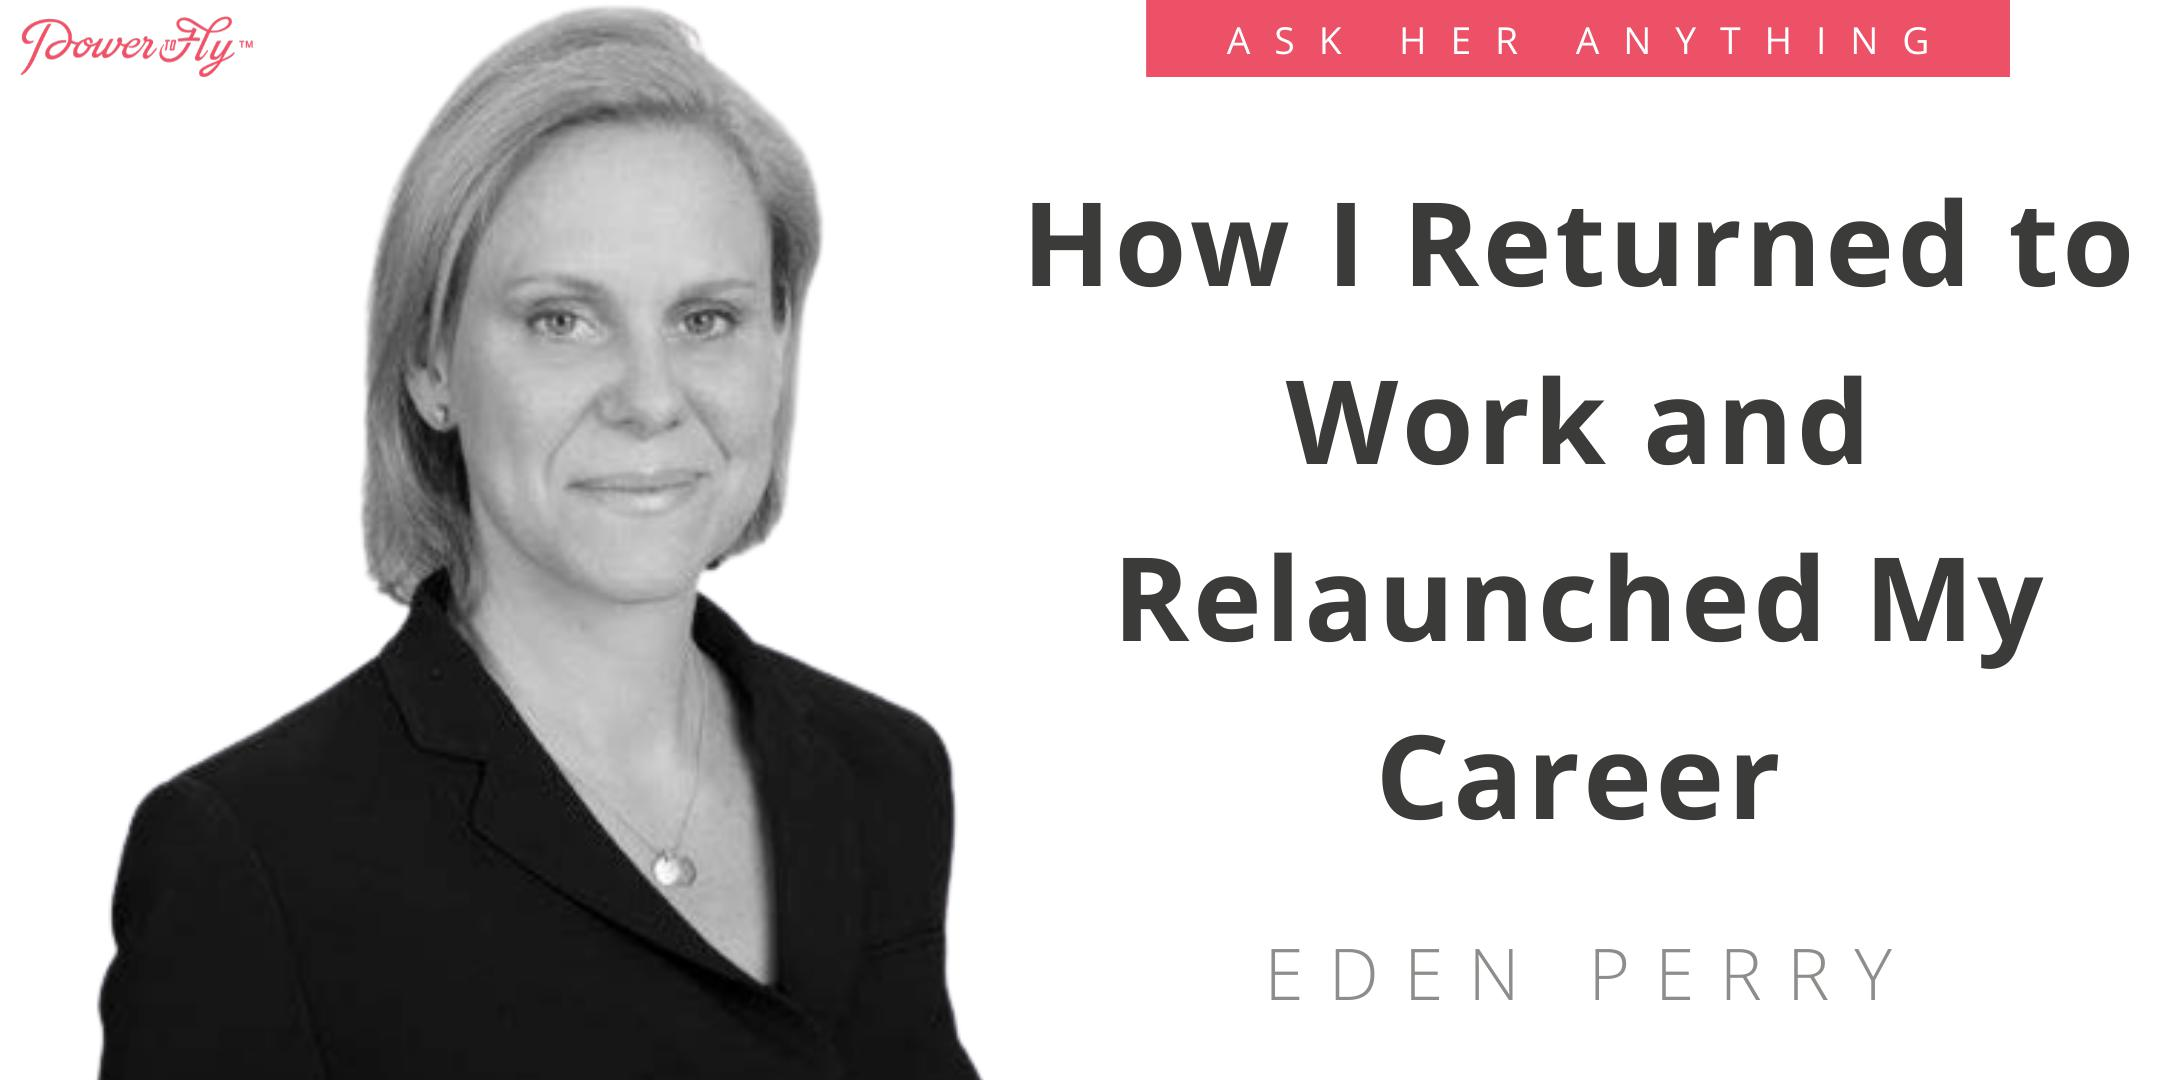 How I Returned to Work and Relaunched My Career